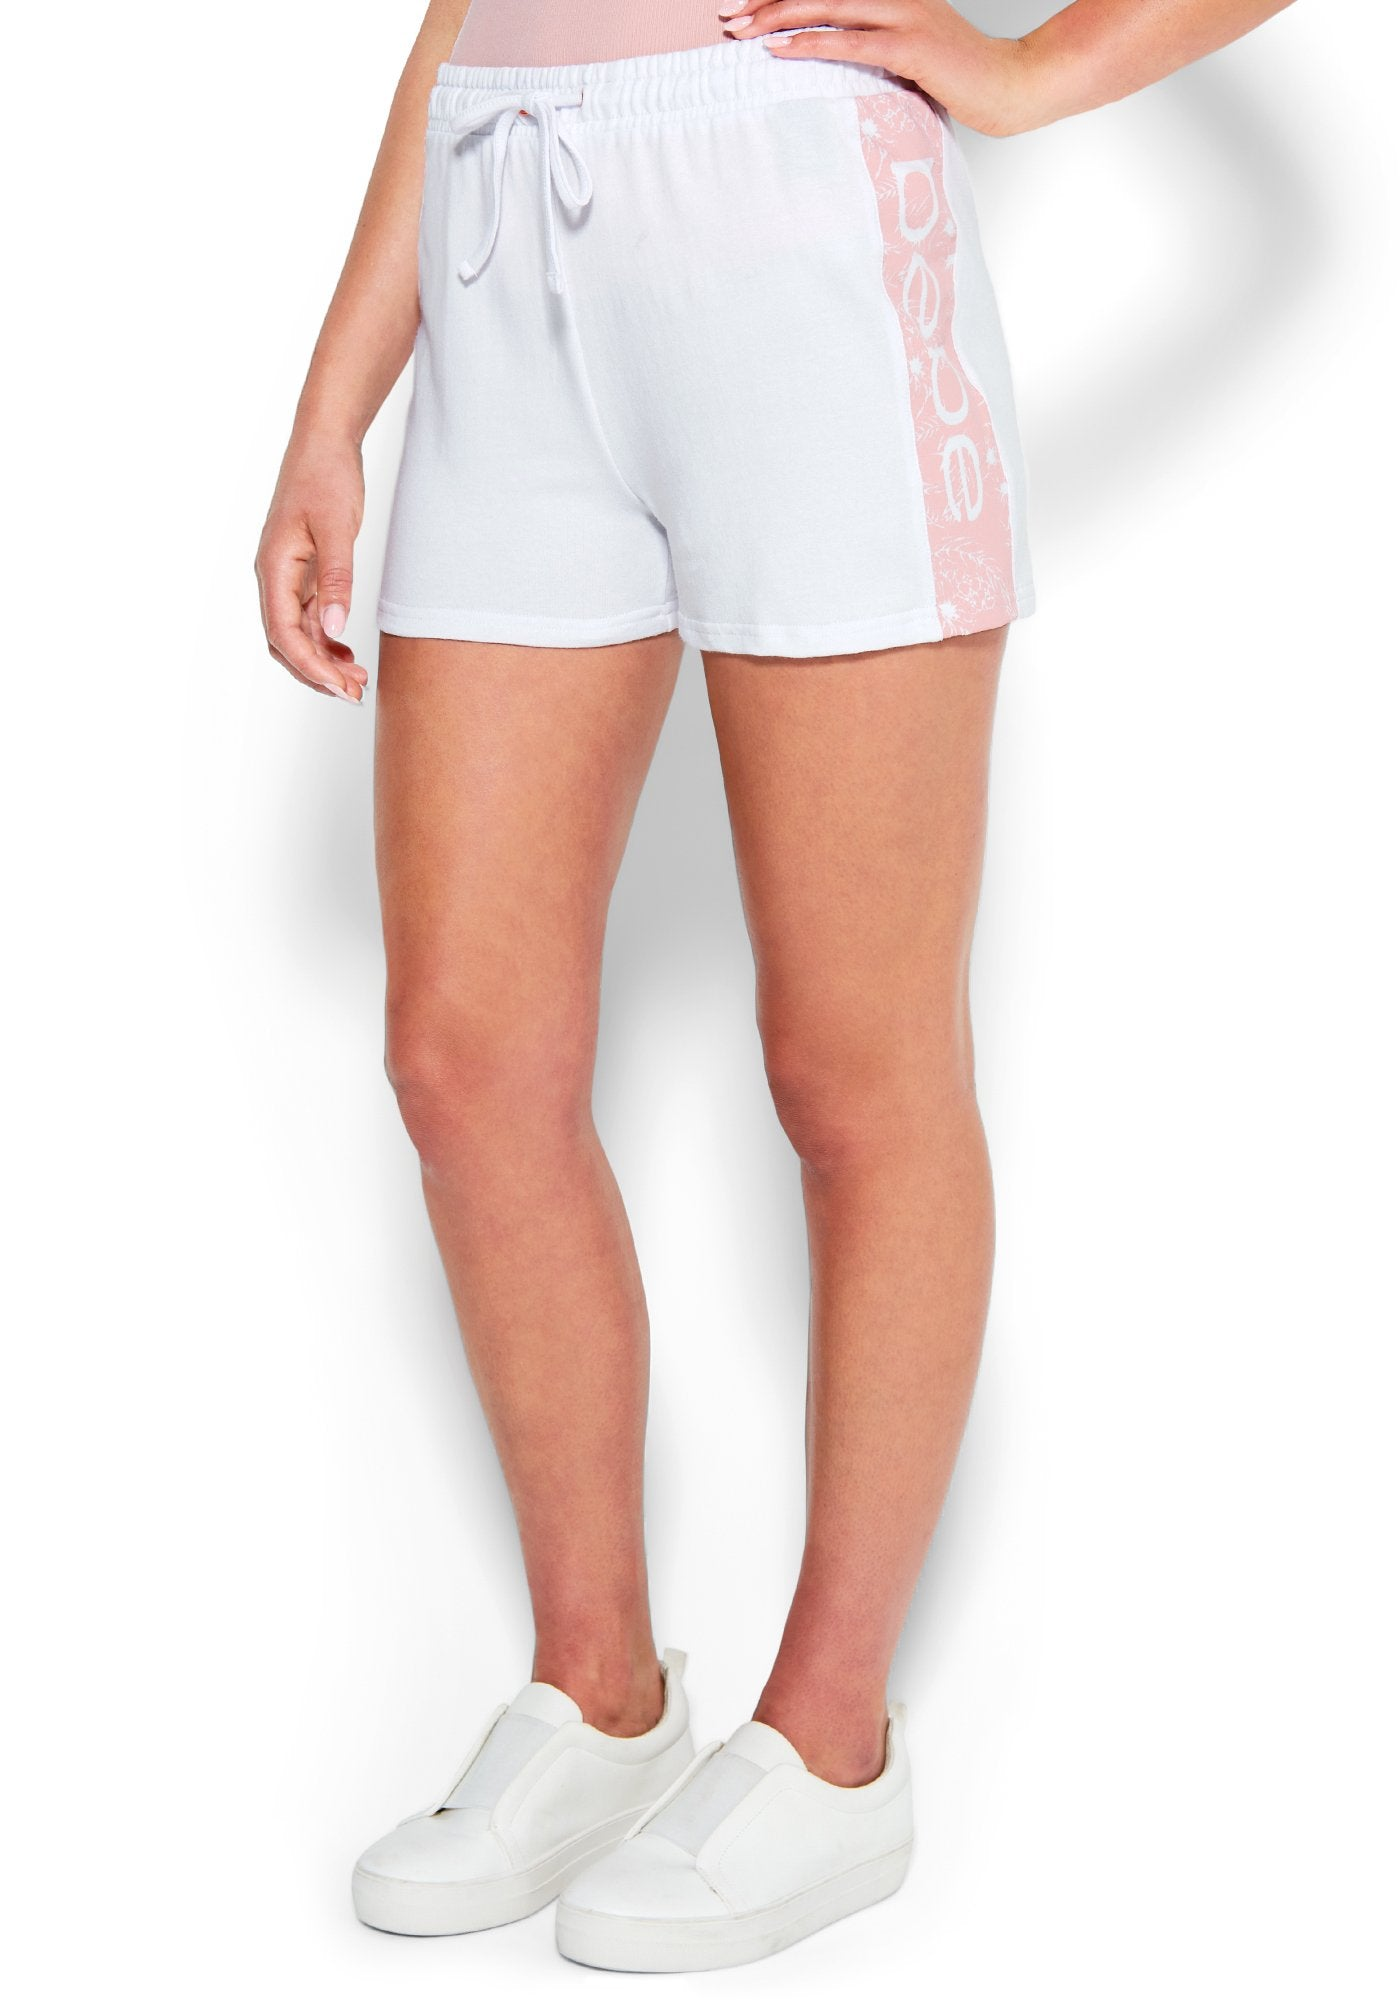 Women's Bebe Logo French Terry Short, Size Small in BRIGHT WHITE Cotton/Spandex